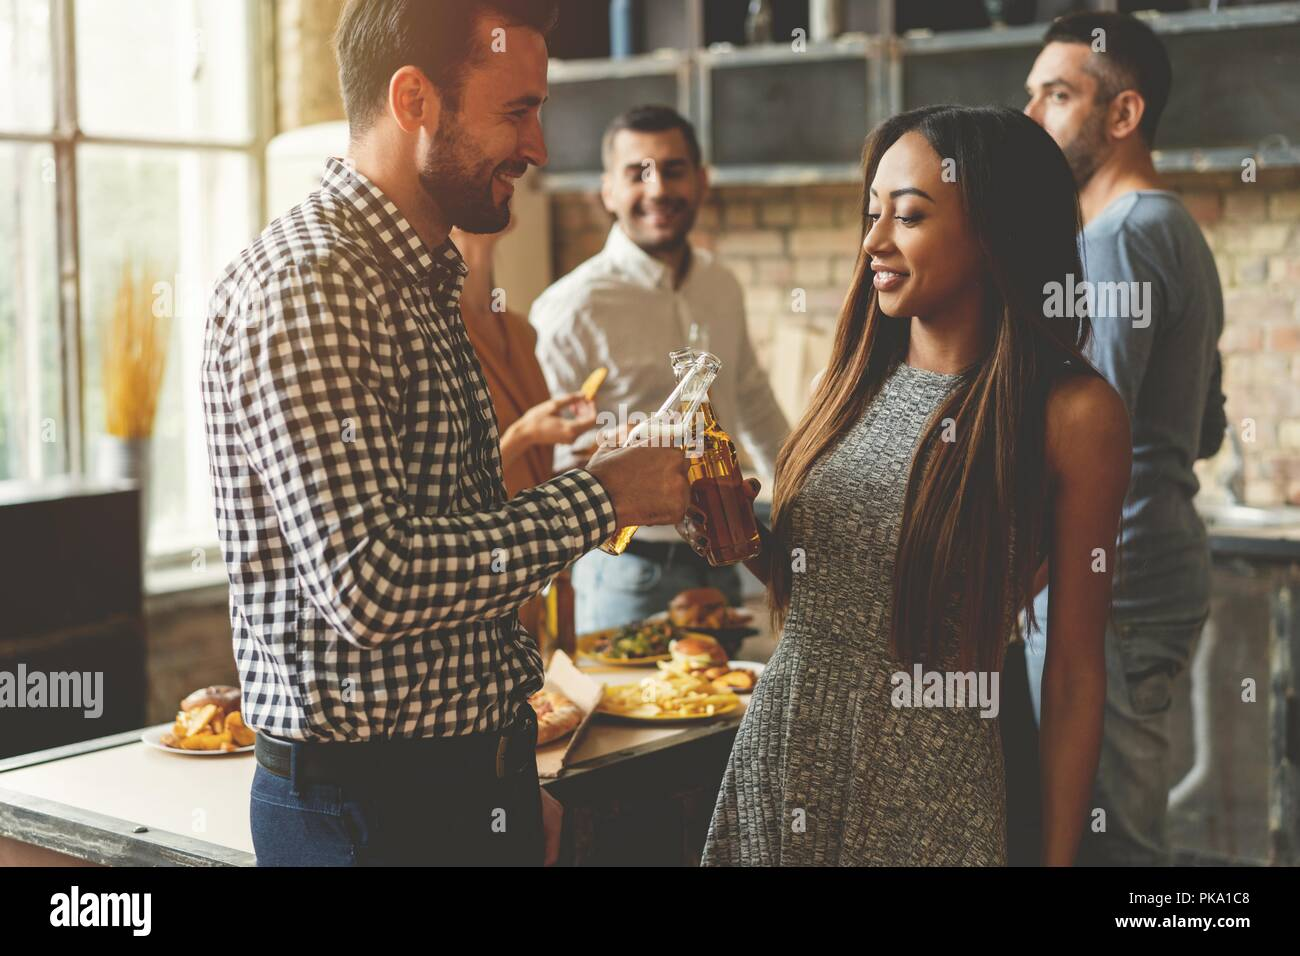 Party with best friends. Group of cheerful young people enjoying home party with snacks and drinks while communicating on the kitchen. - Stock Image